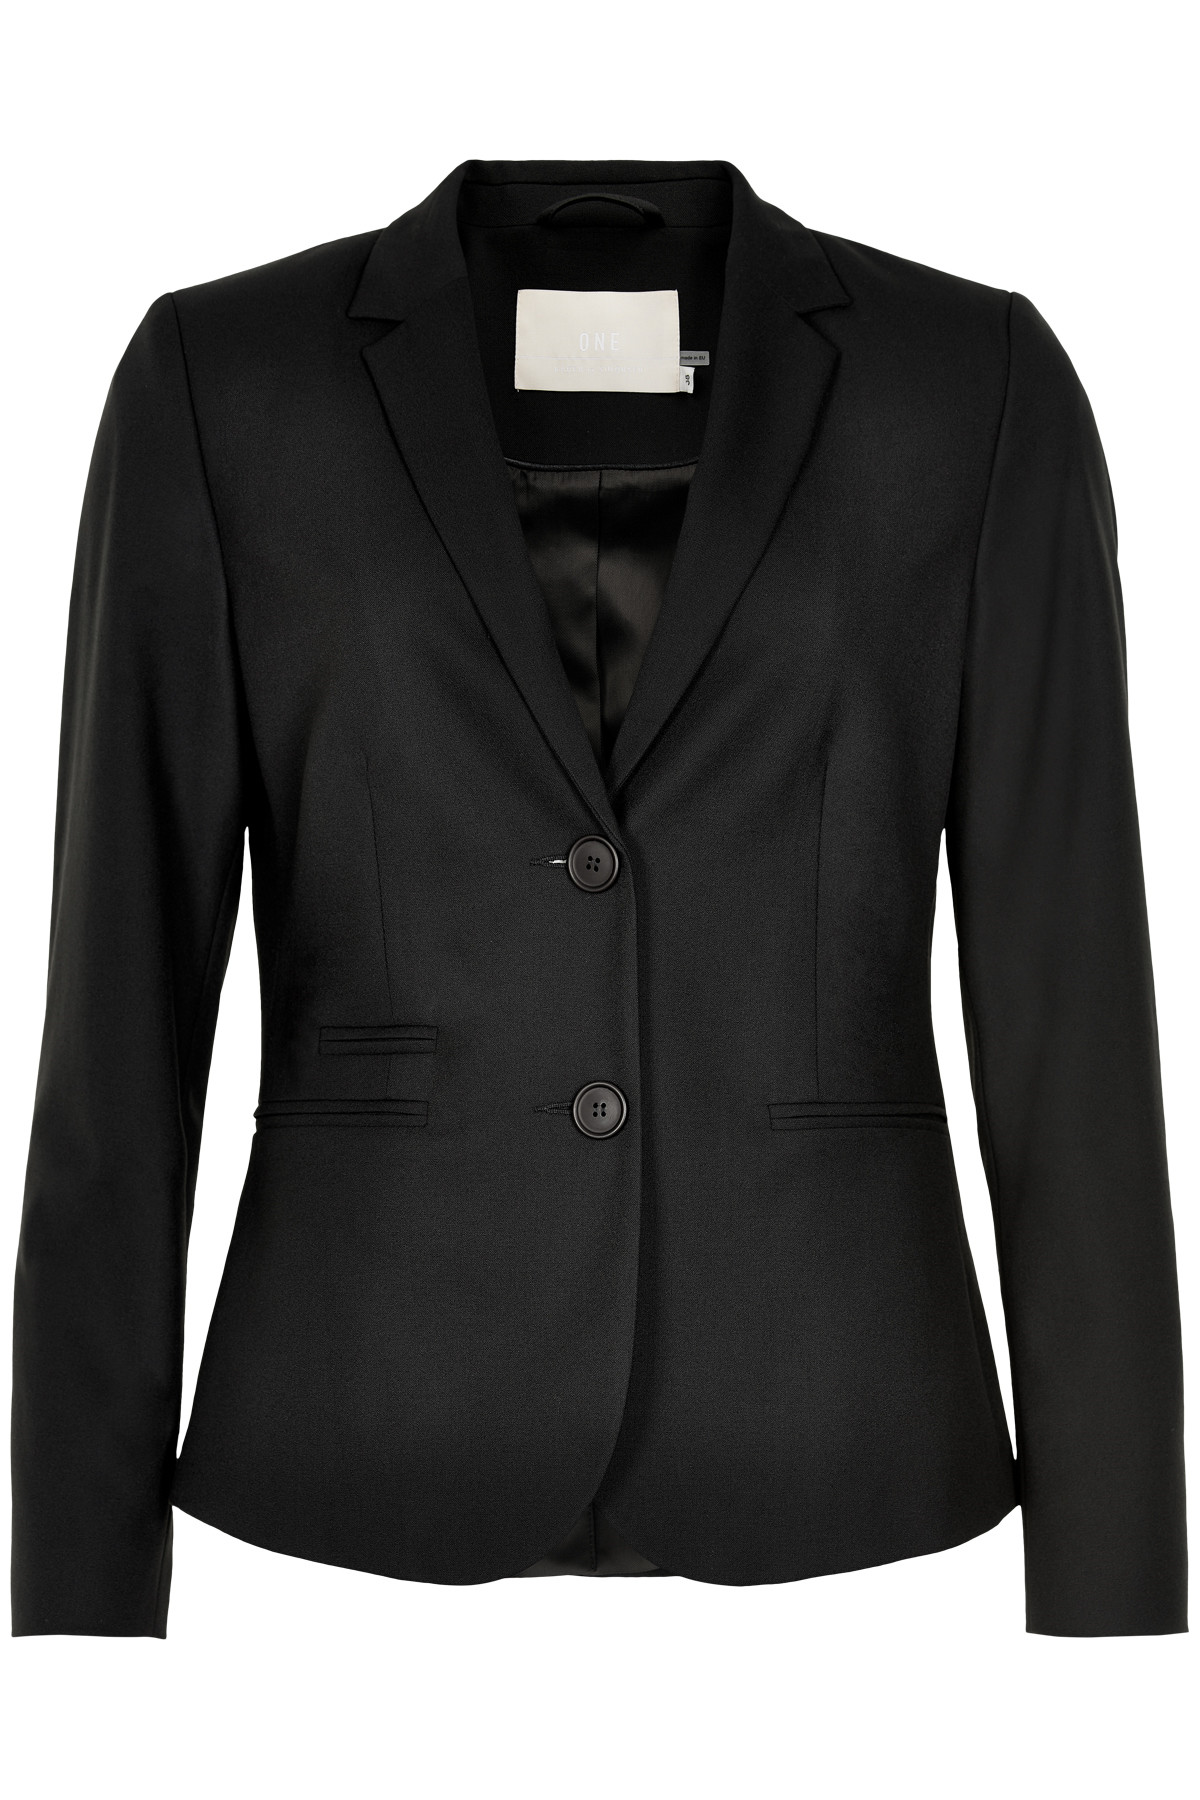 Image of   KAREN BY SIMONSEN SYDNEY BLAZER 10102089 (Black 40999, 36)